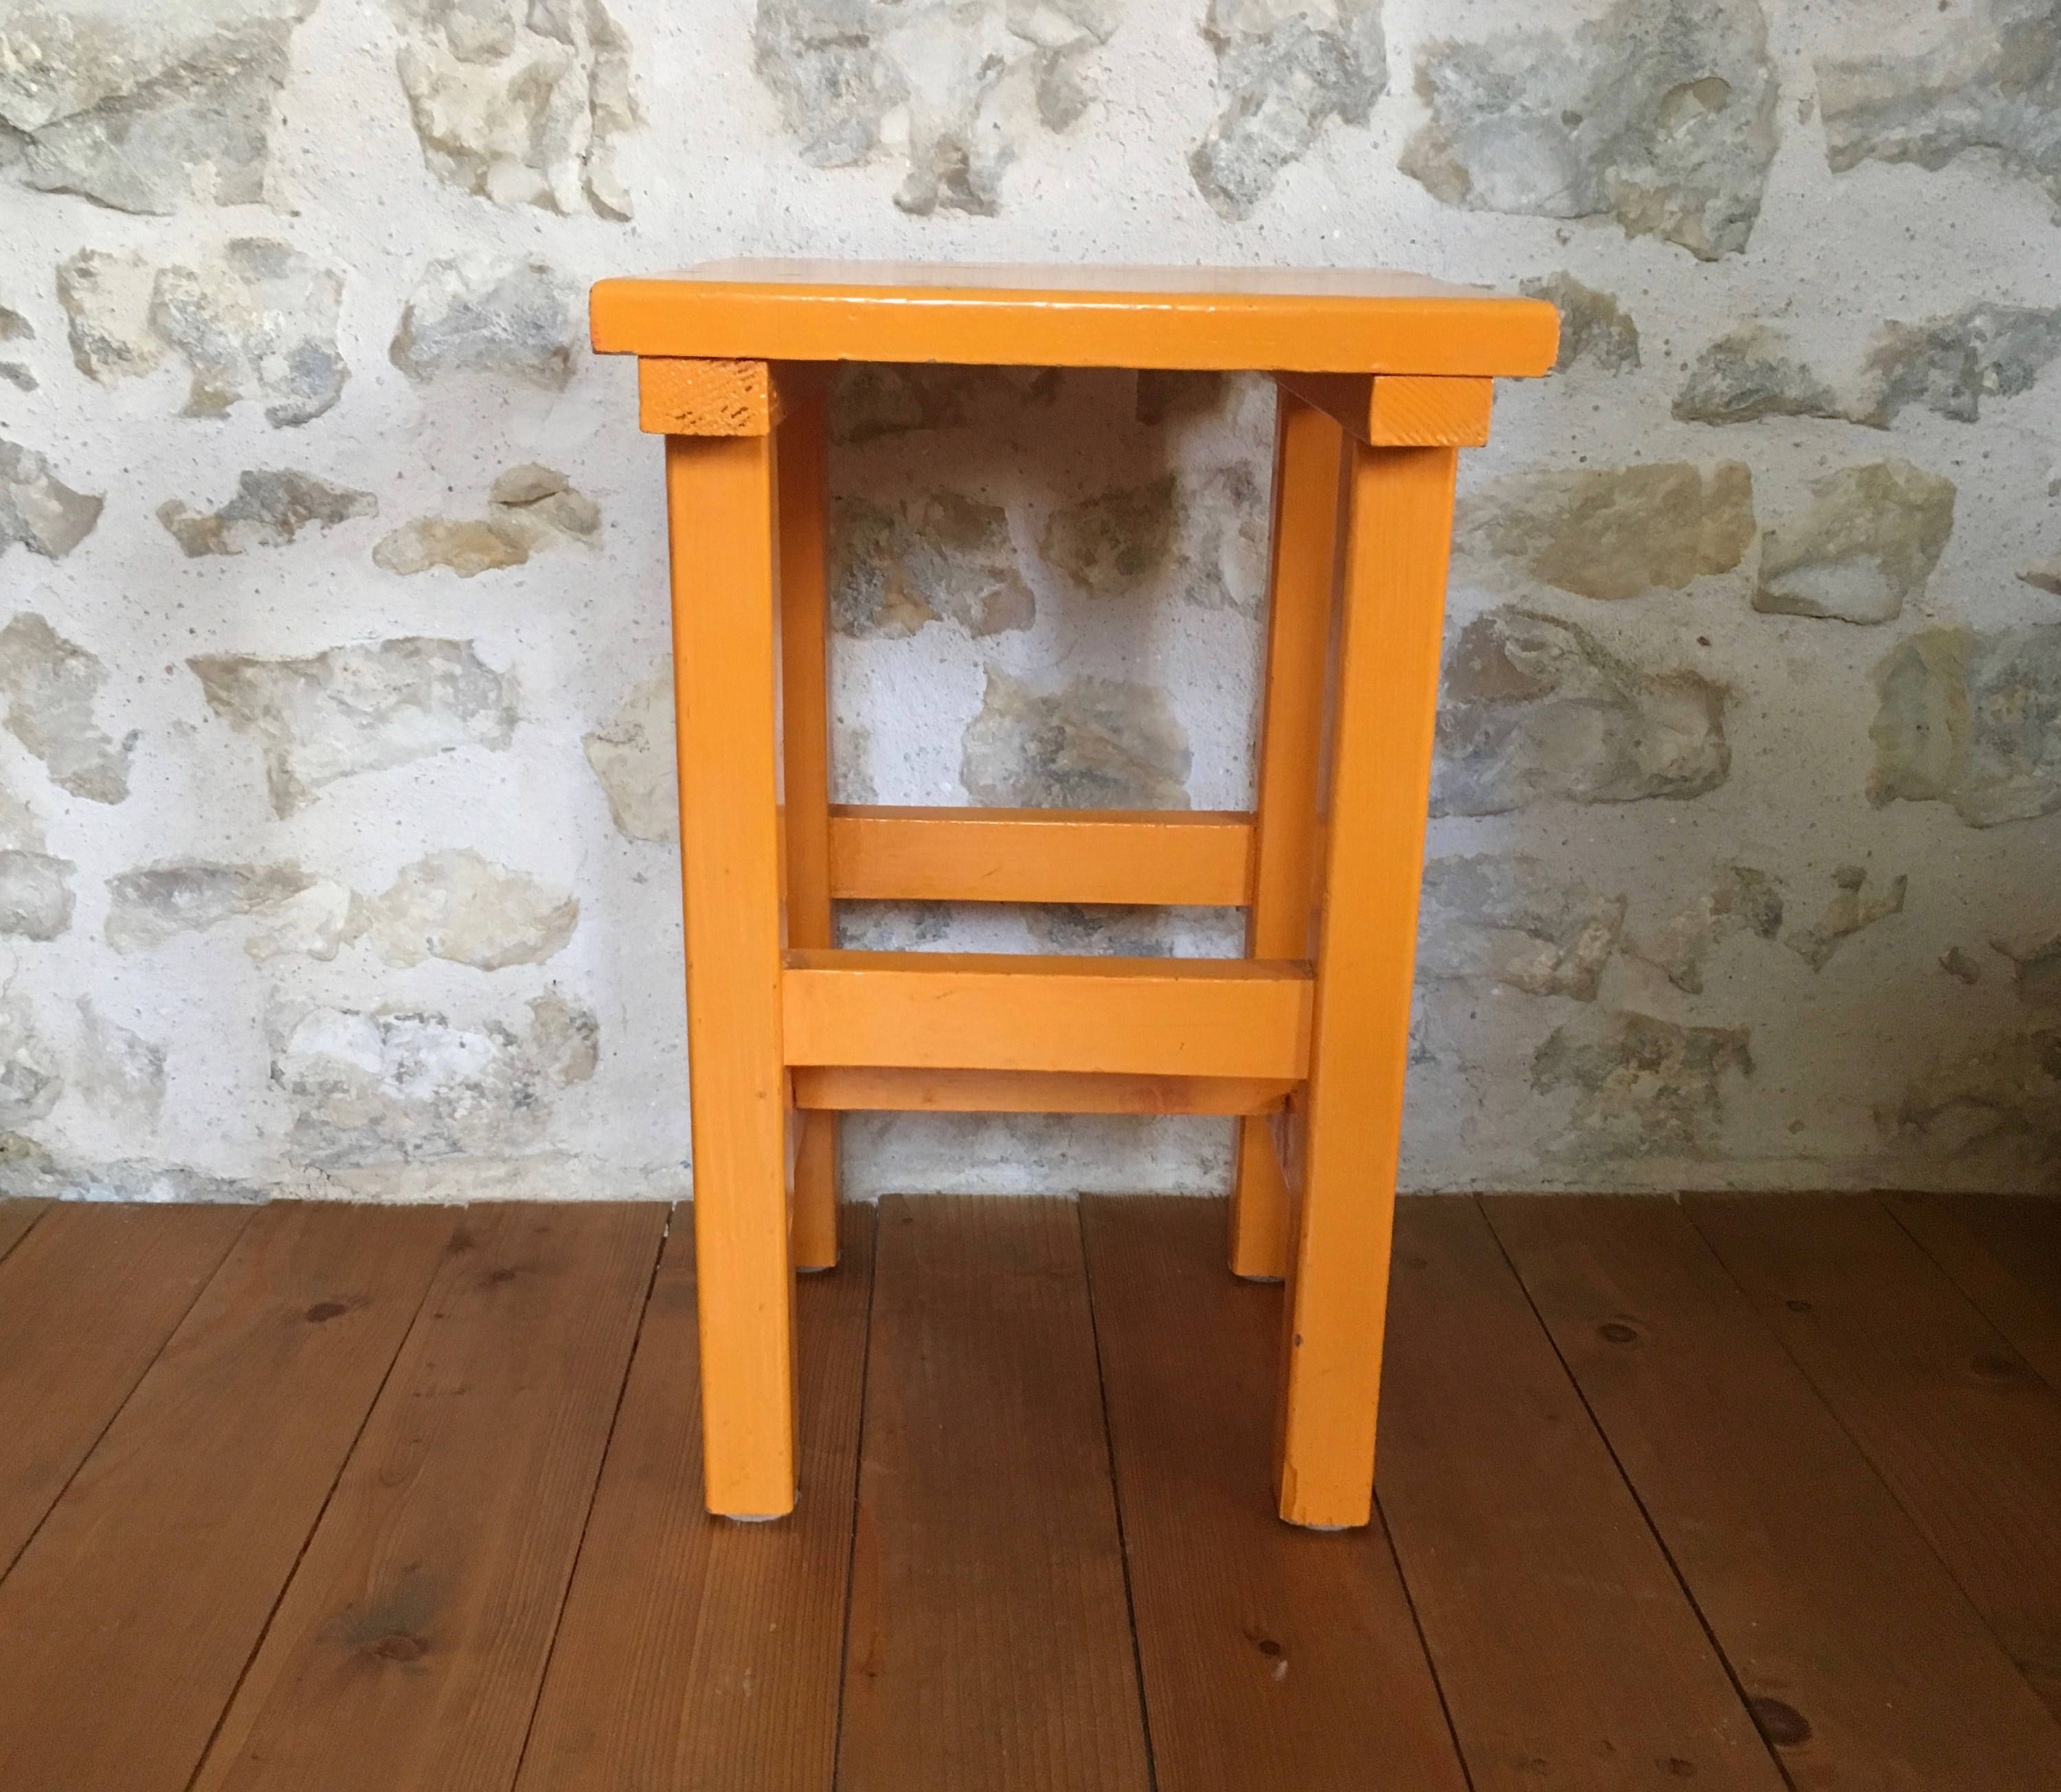 Tabouret orange bois années 70 French Vintage kitchen wood stool de ...